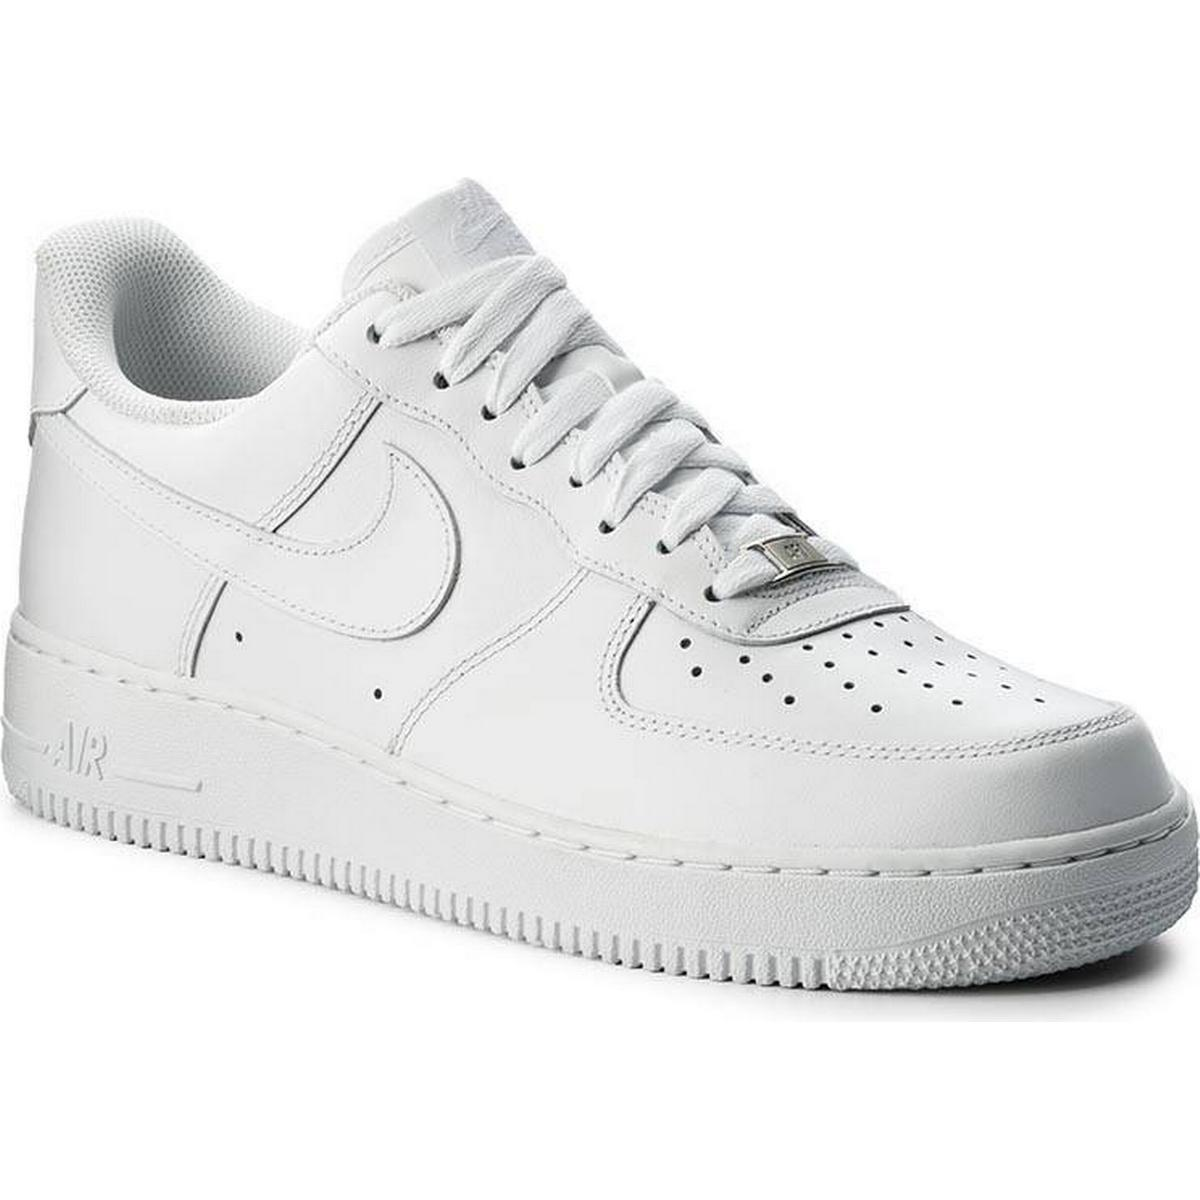 Nike Air Force 1 Low Under Construction White Wolf Grey